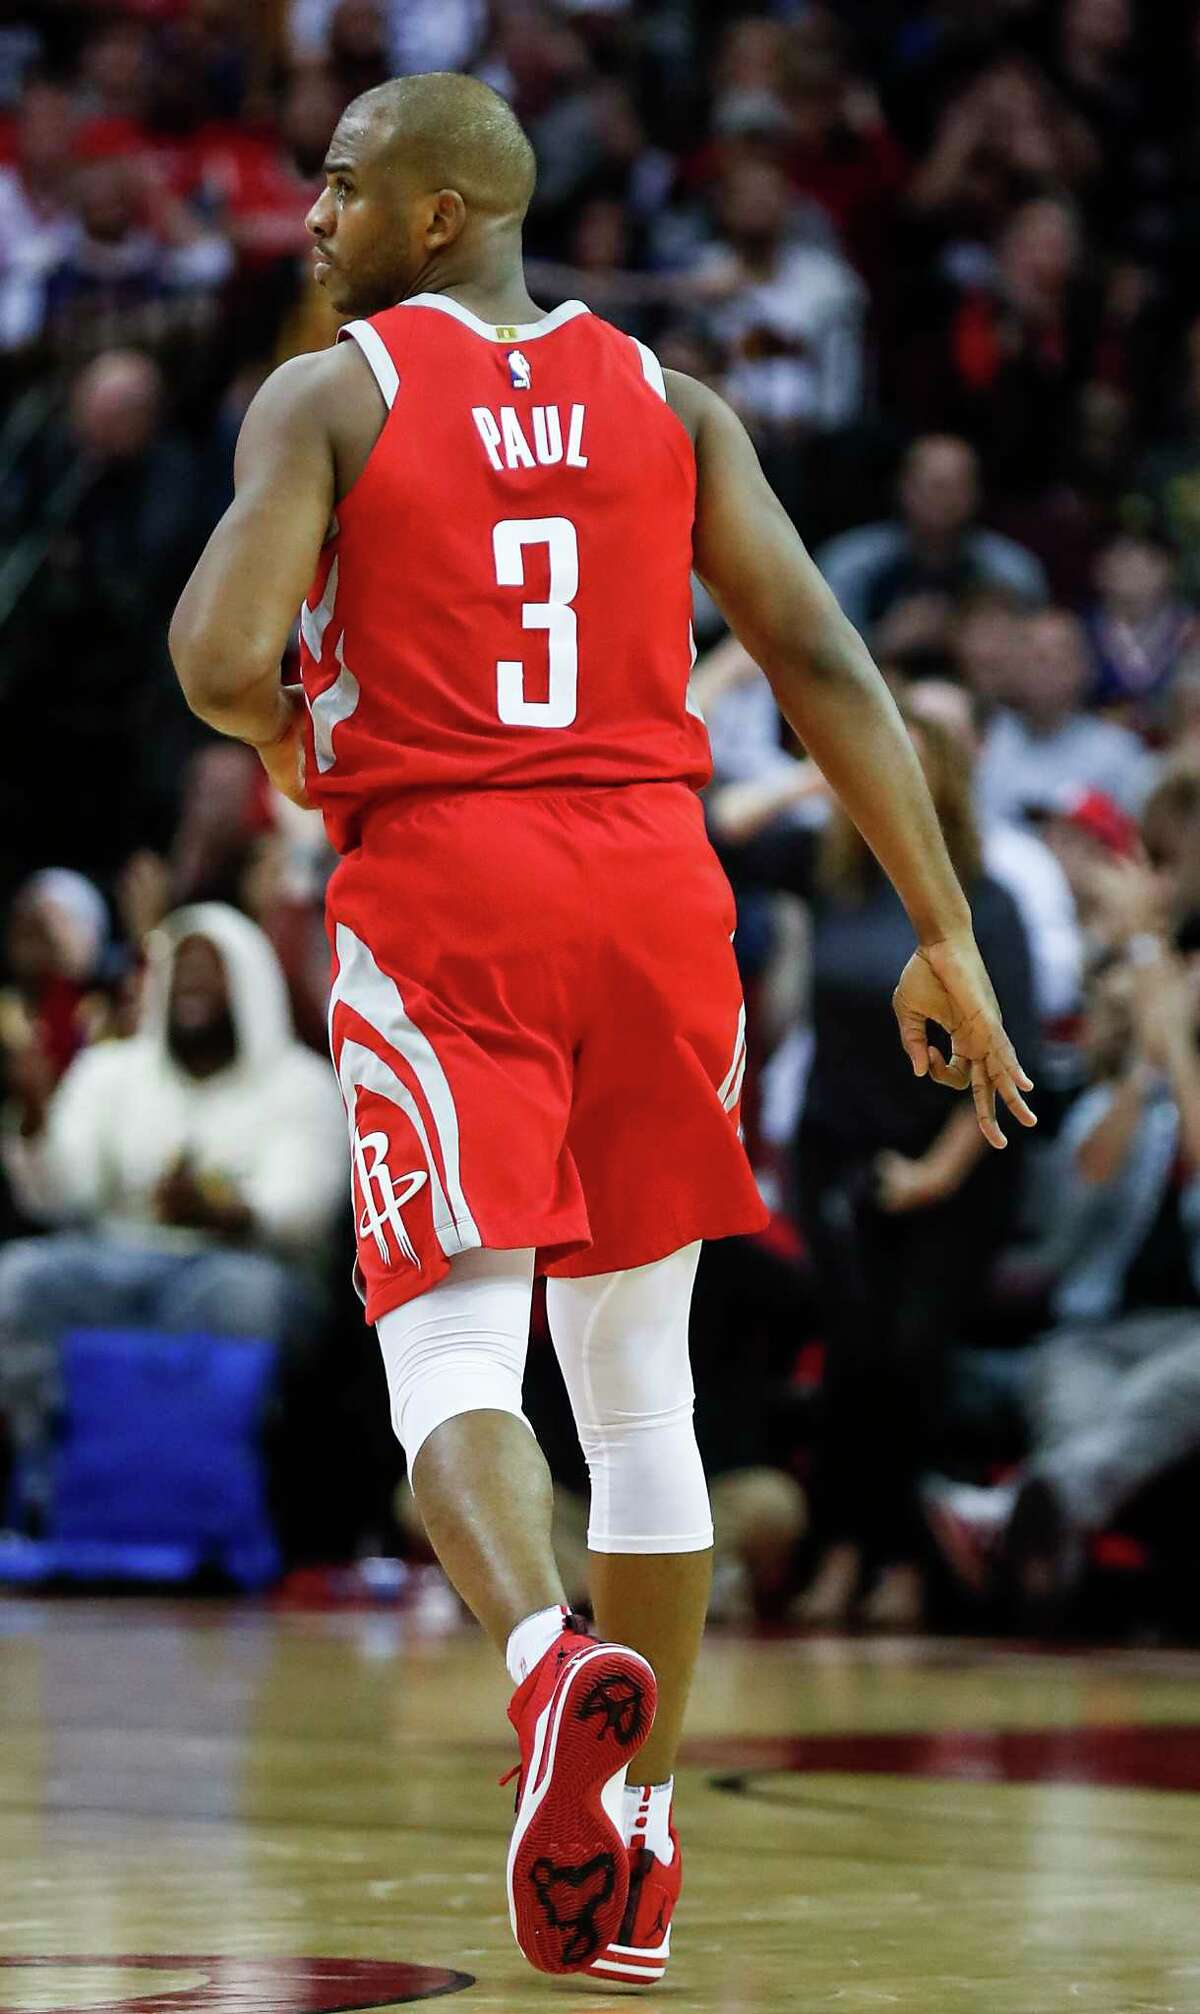 Houston Rockets guard Chris Paul (3) runs back up court after hitting a 3-pointer during the second quarter of an NBA basketball game against the Golden State Warriors at Toyota Center on Saturday, Jan. 20, 2018, in Houston.